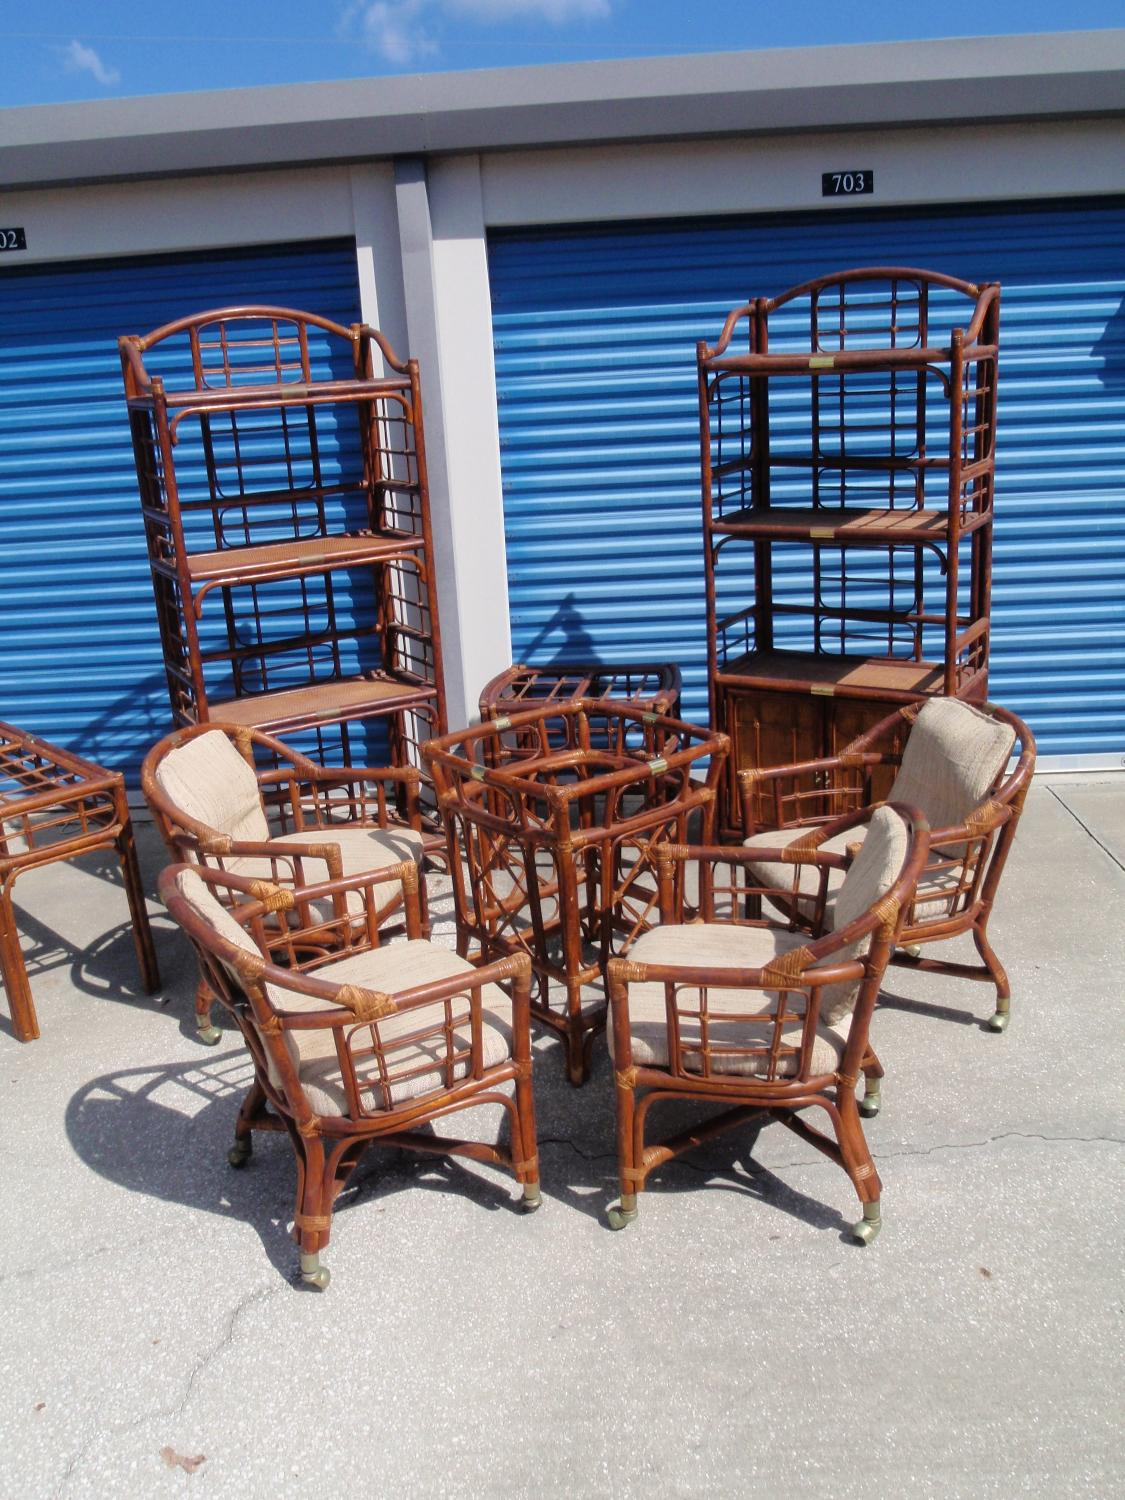 Furniture In Good Condition for sale in Panama City, Florida for 2017